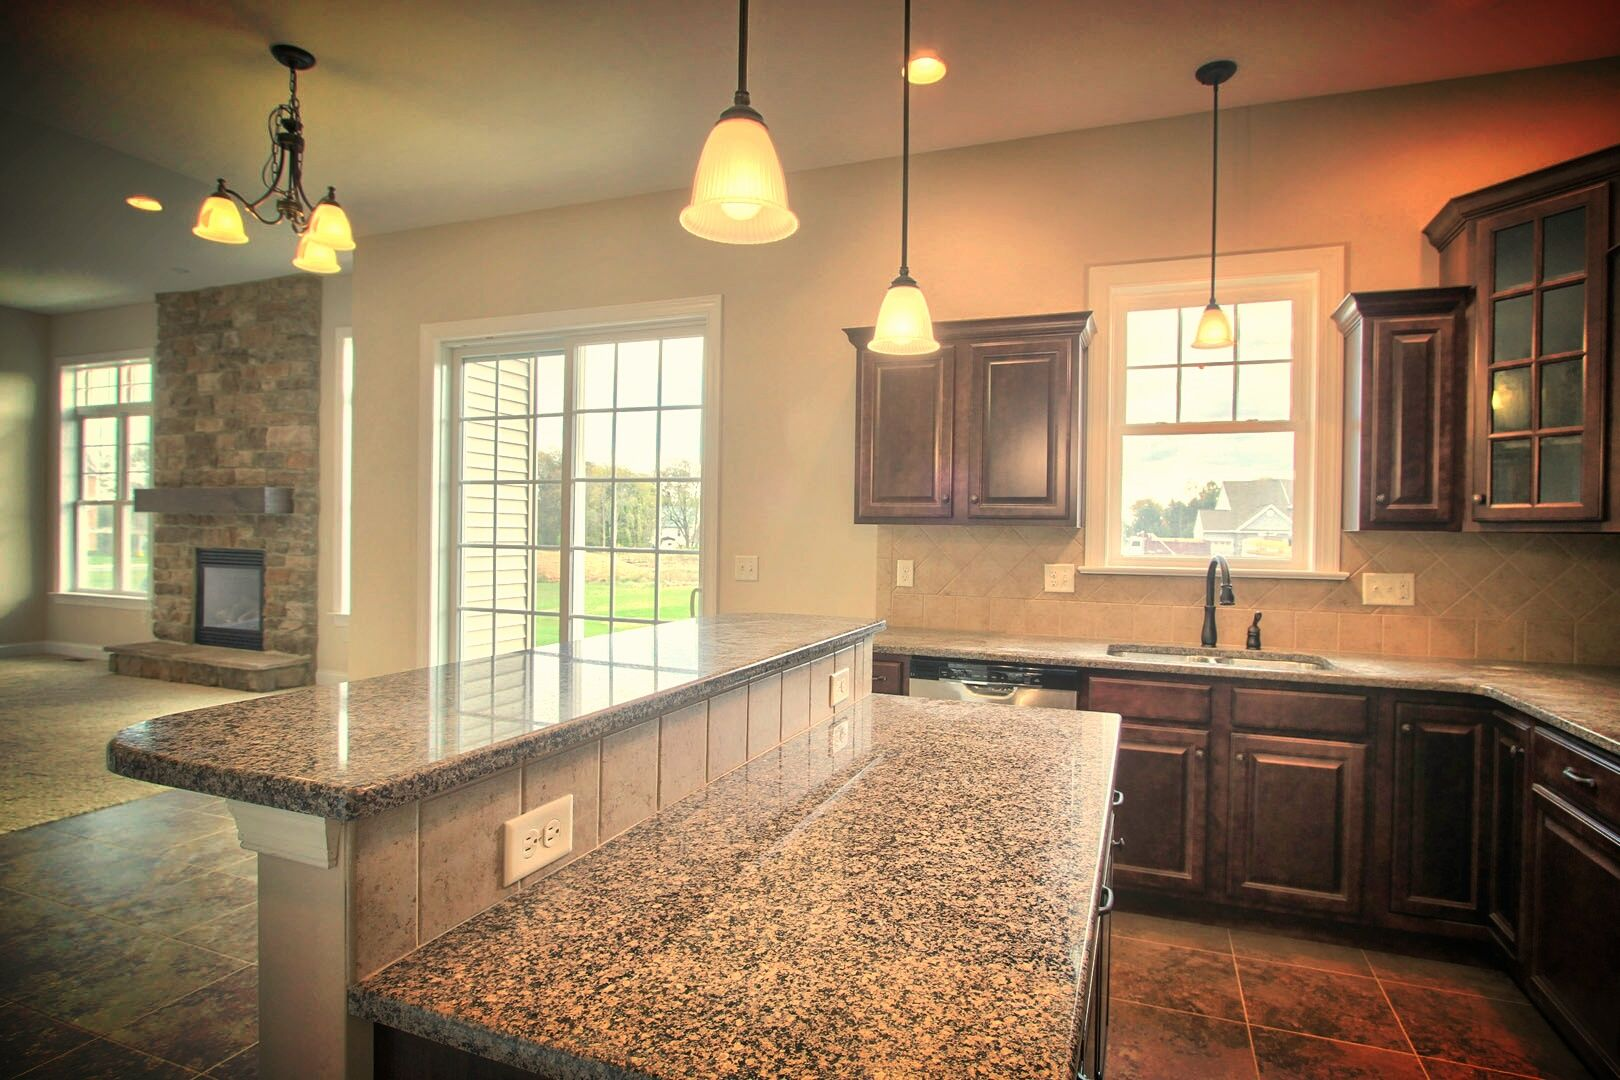 Merveilleux Top Granite, Bar Tops, Bar Countertop, Breakfast Bar, Breakfast Area .